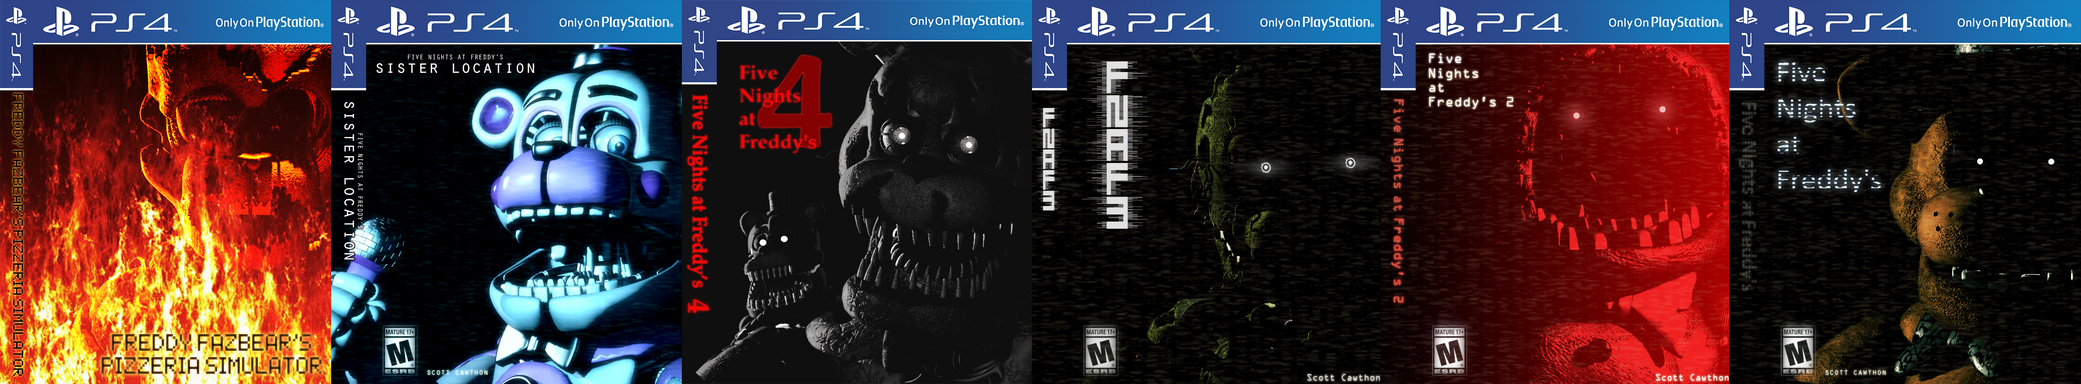 Five Night's at Freddy's [PlayStation 4 Covers]